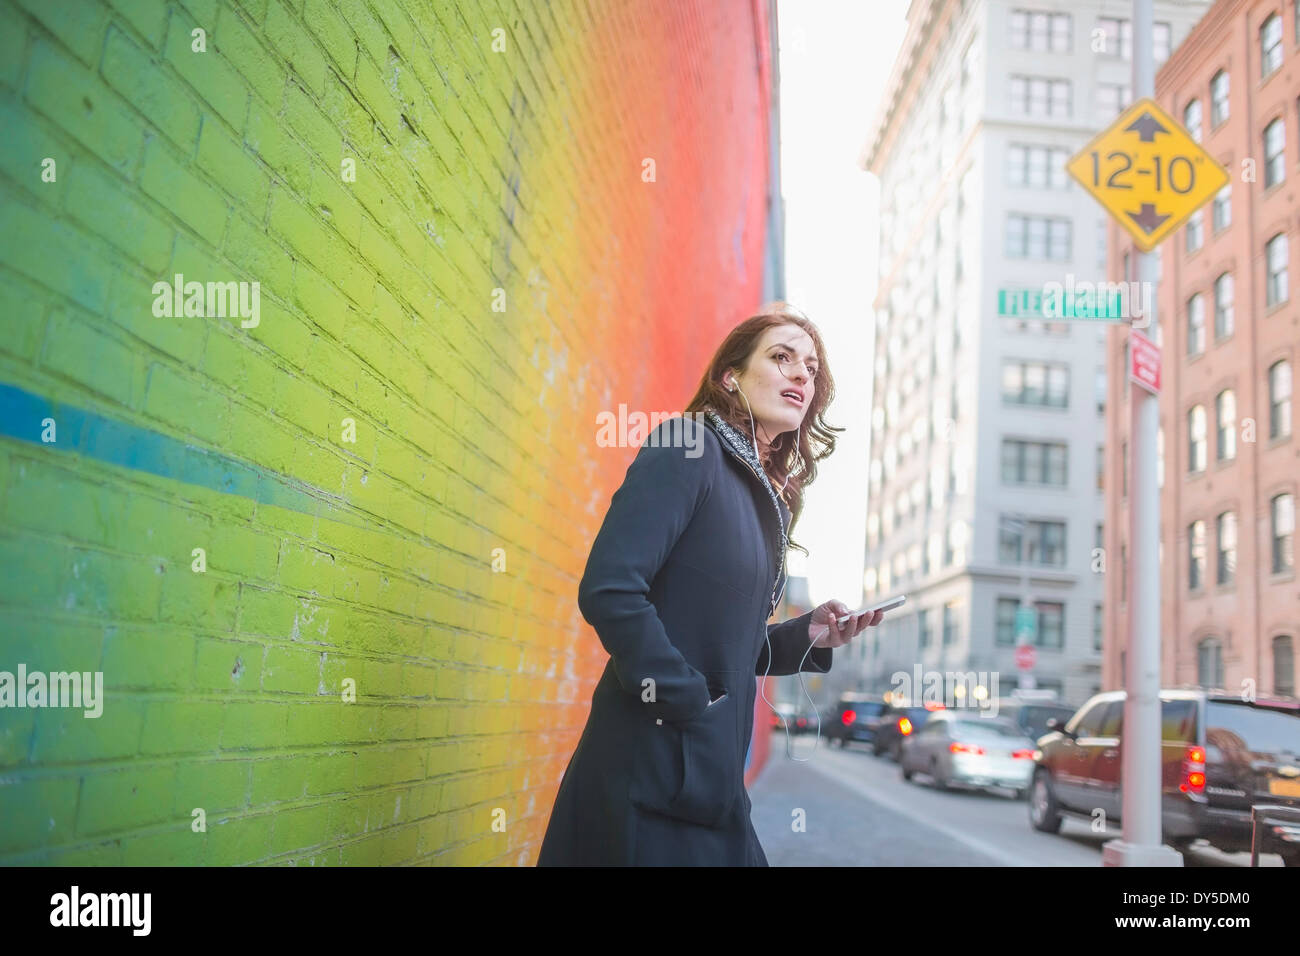 Young woman waiting on city street - Stock Image